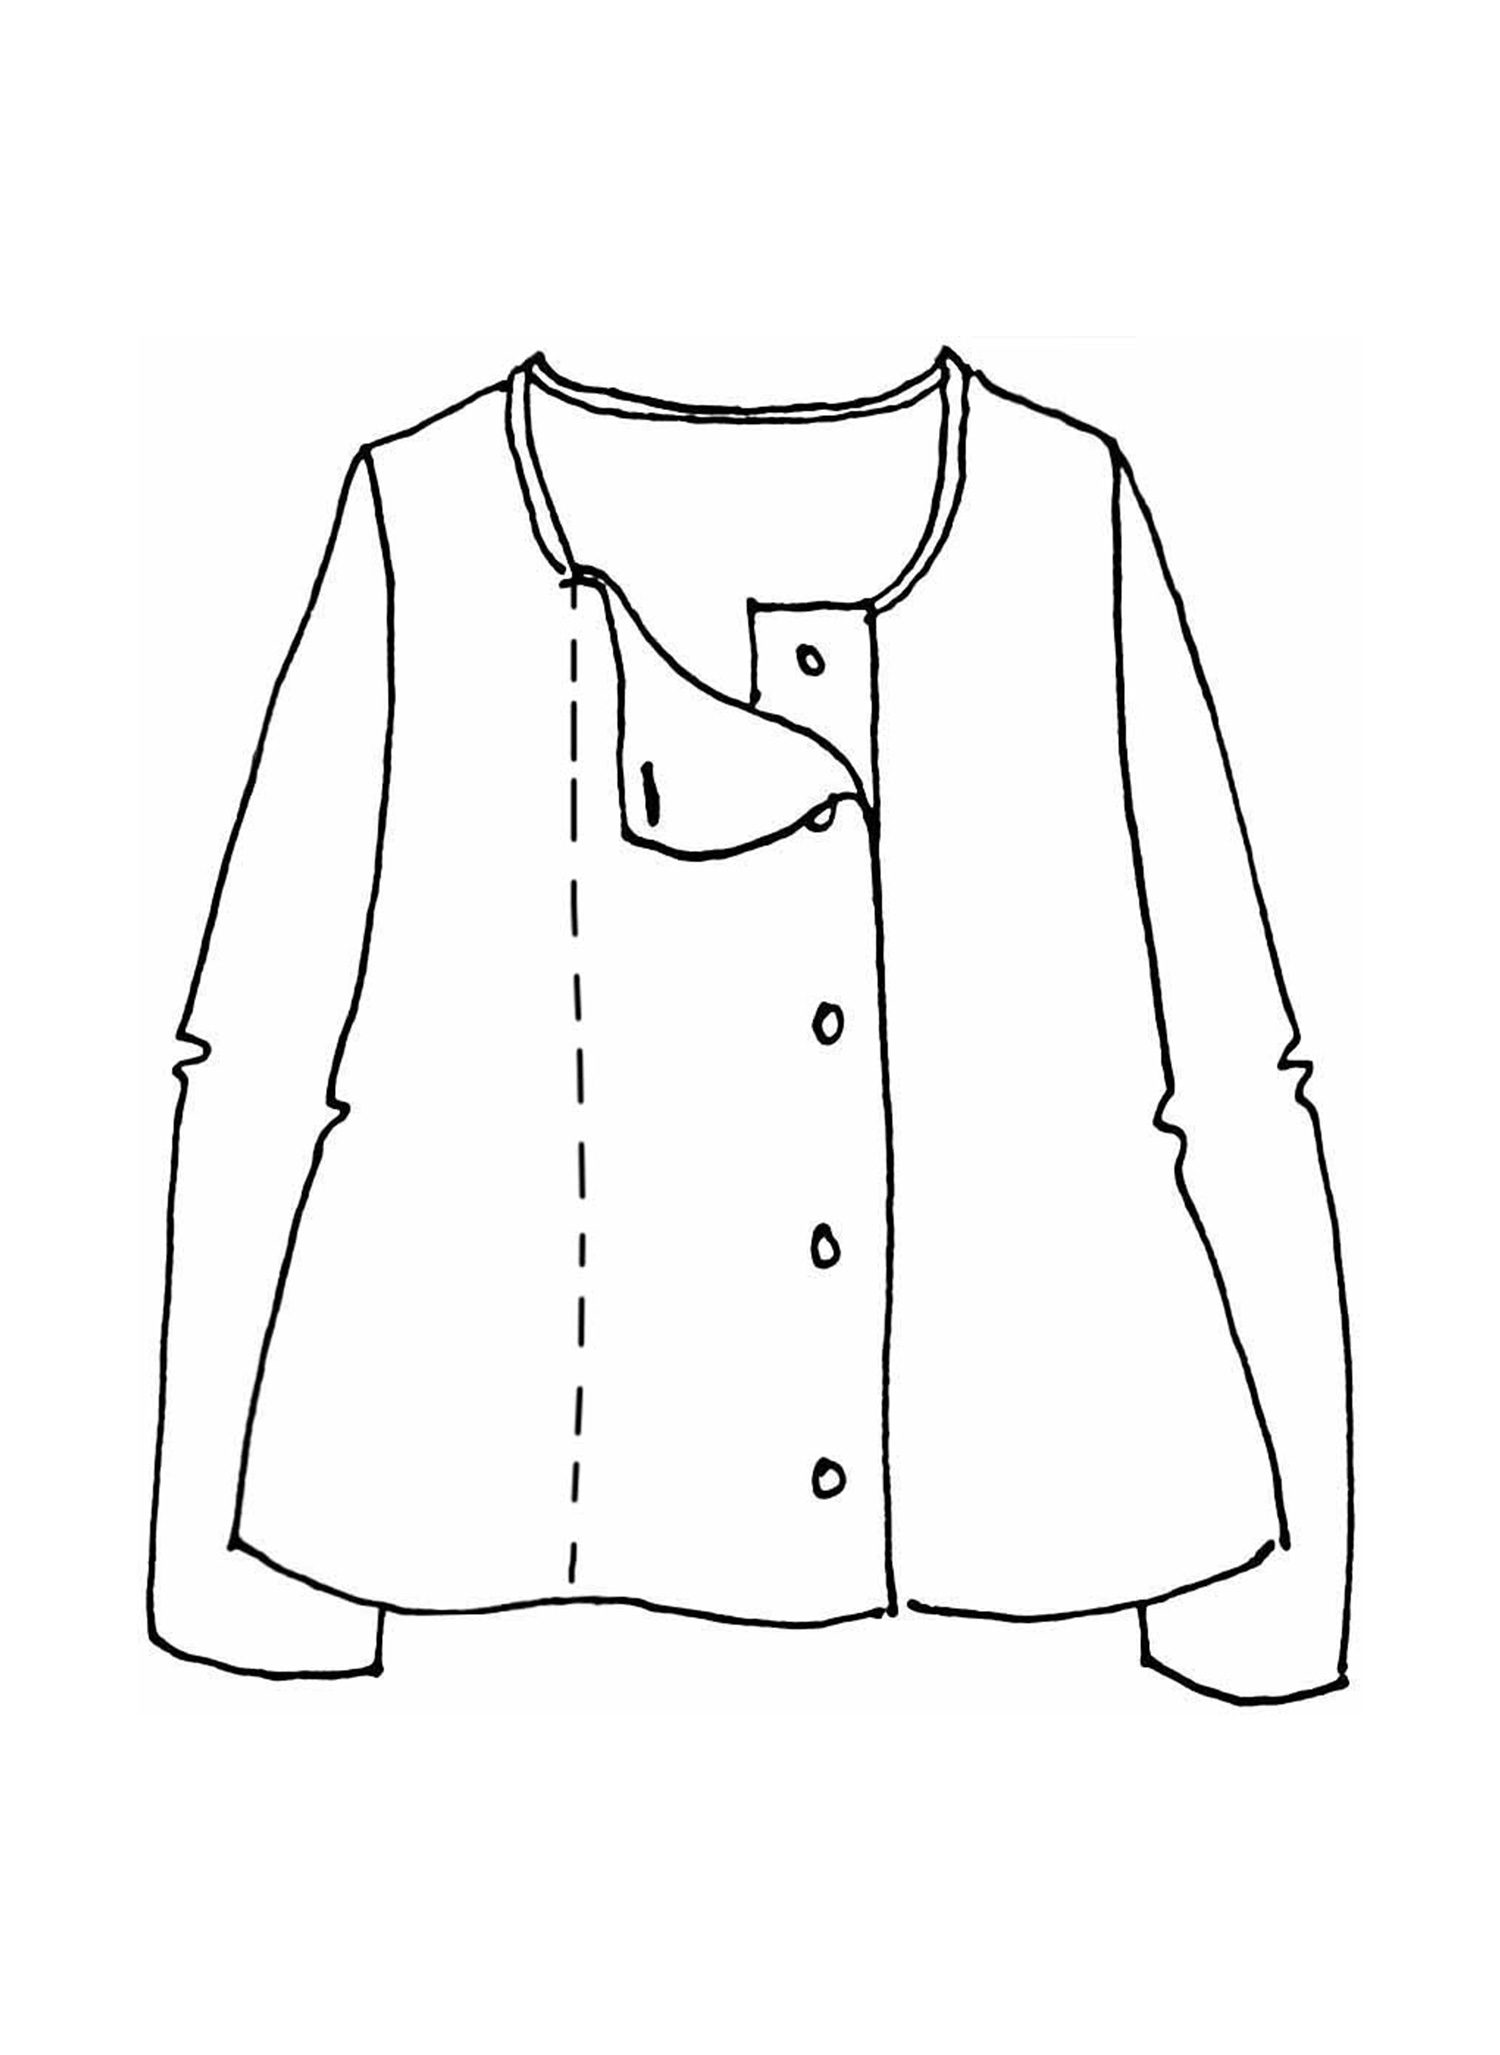 Elemental Cardigan sketch image